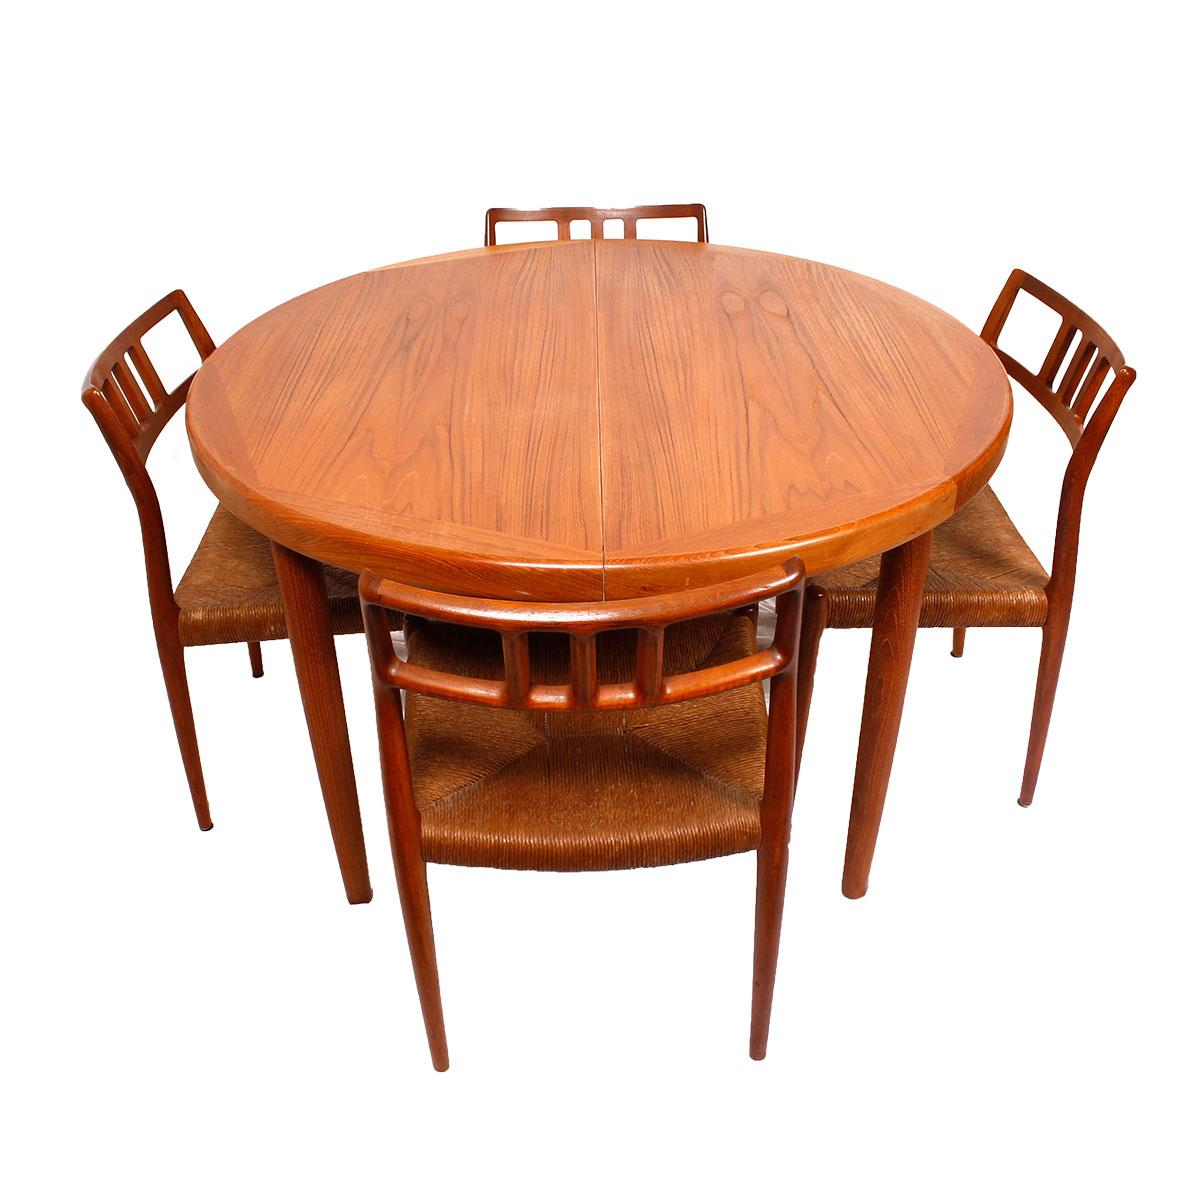 Danish Teak RoundOval Dining Table amp Pads Chairish : 21b3e45f 05fa 4604 96ad c8d44d418ba2aspectfitampwidth640ampheight640 from www.chairish.com size 640 x 640 jpeg 41kB